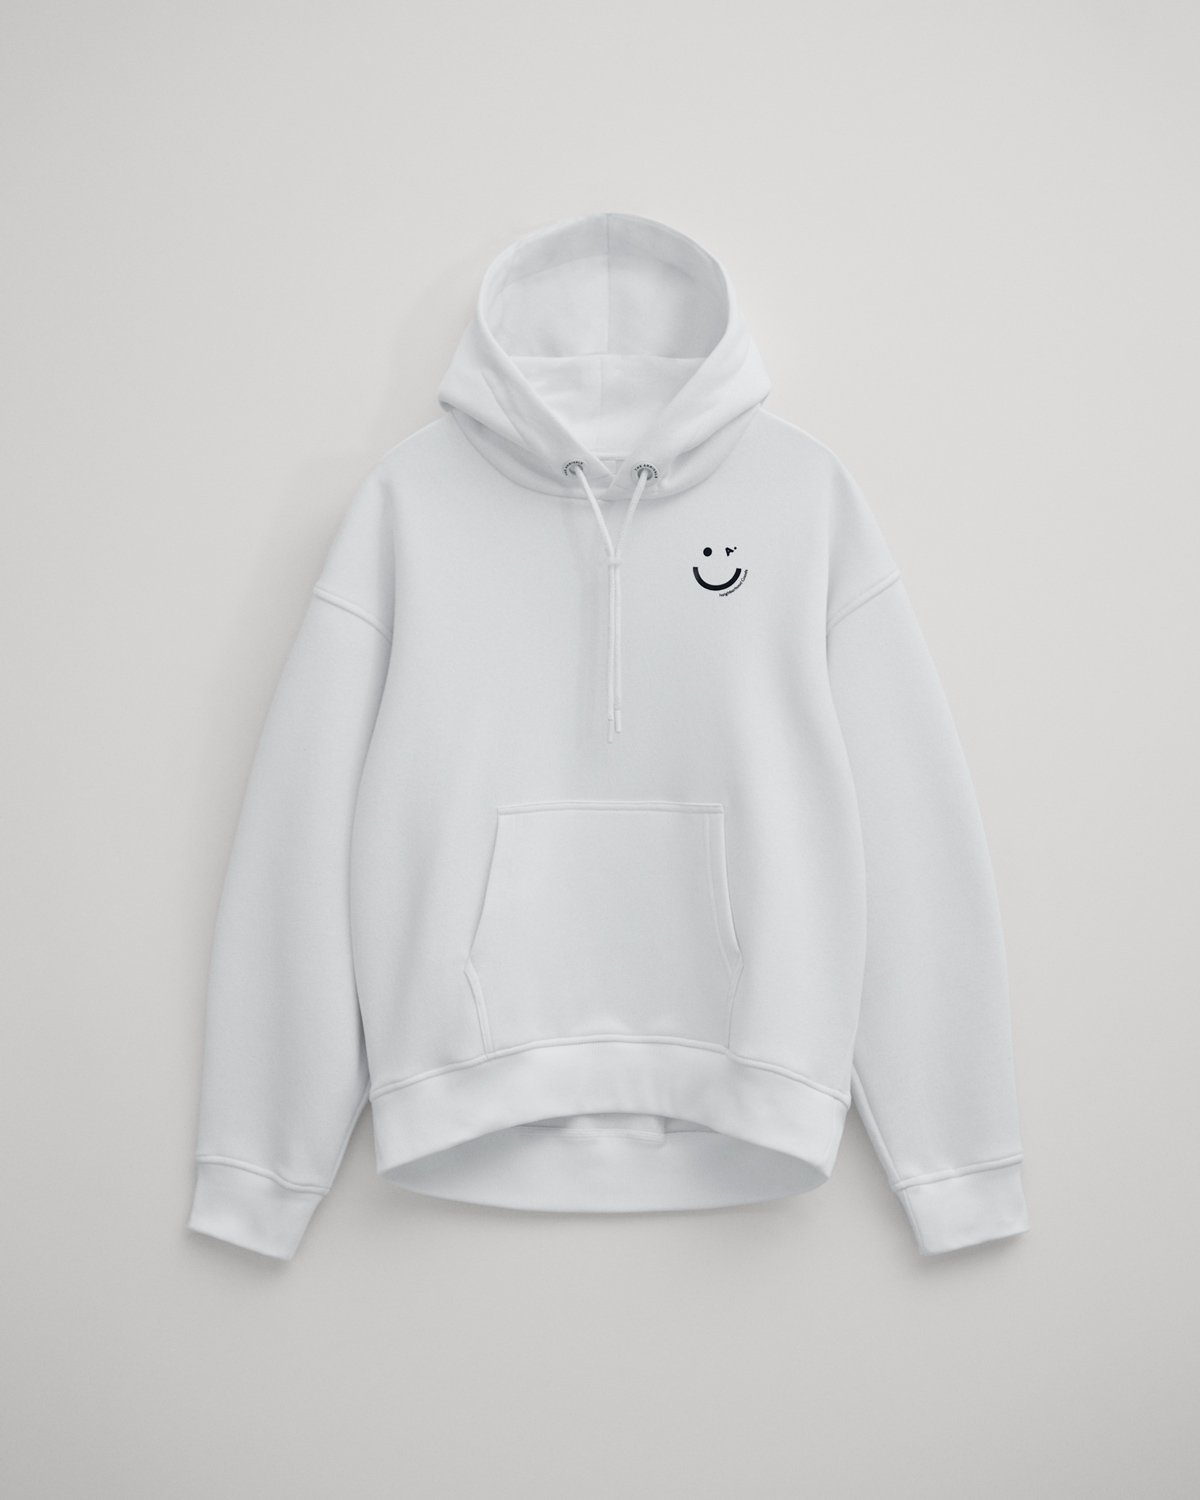 Neighborhood Goods The Arrivals Co-Ed Hoodie / Neighborhood Goods